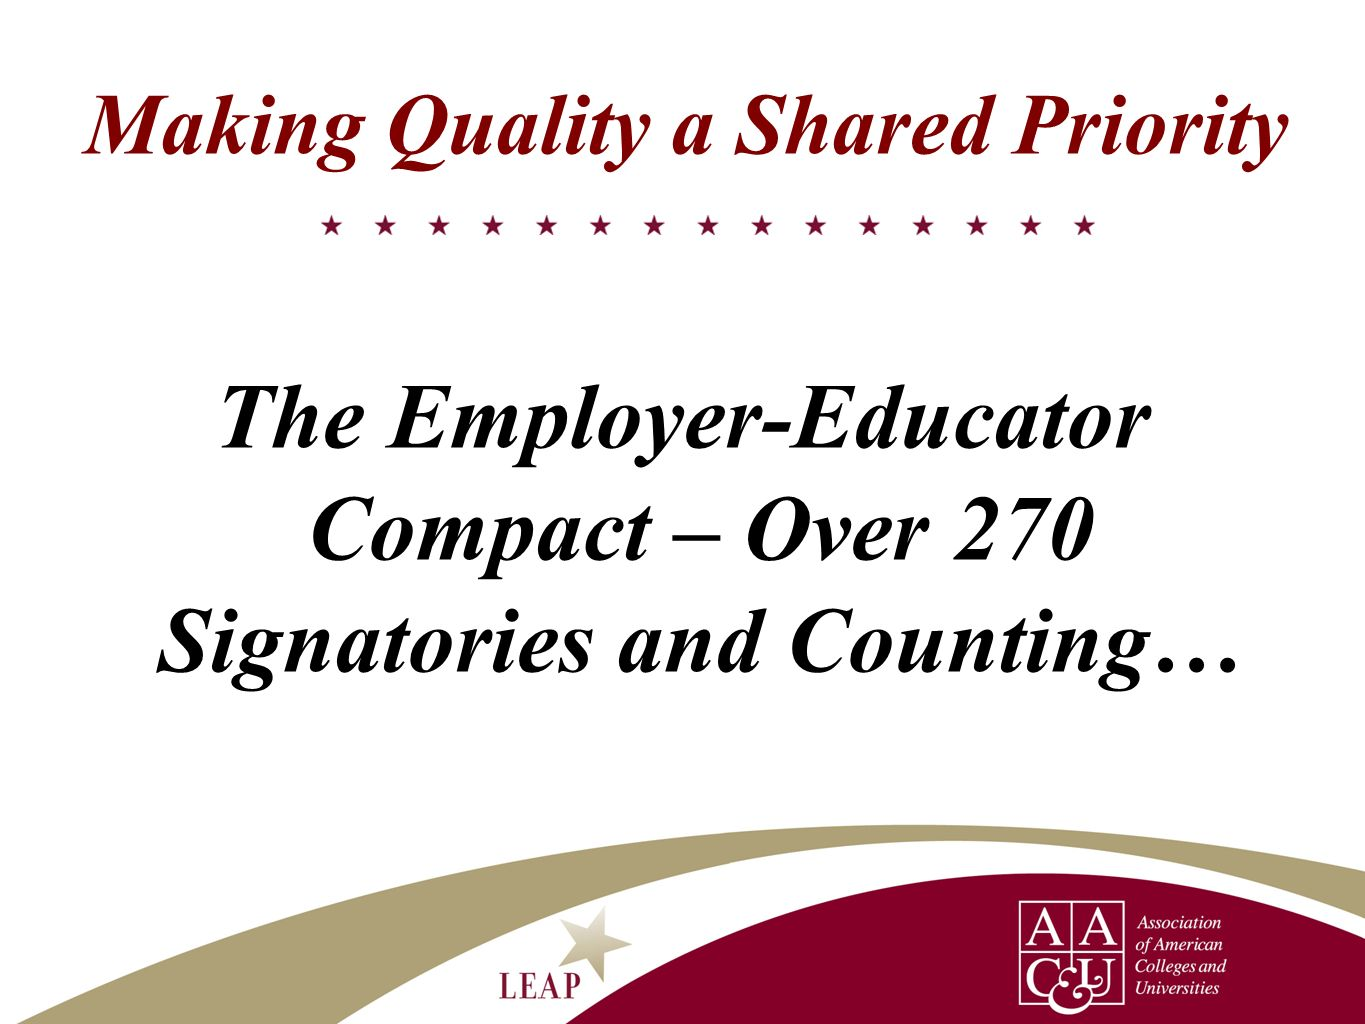 Making Quality a Shared Priority